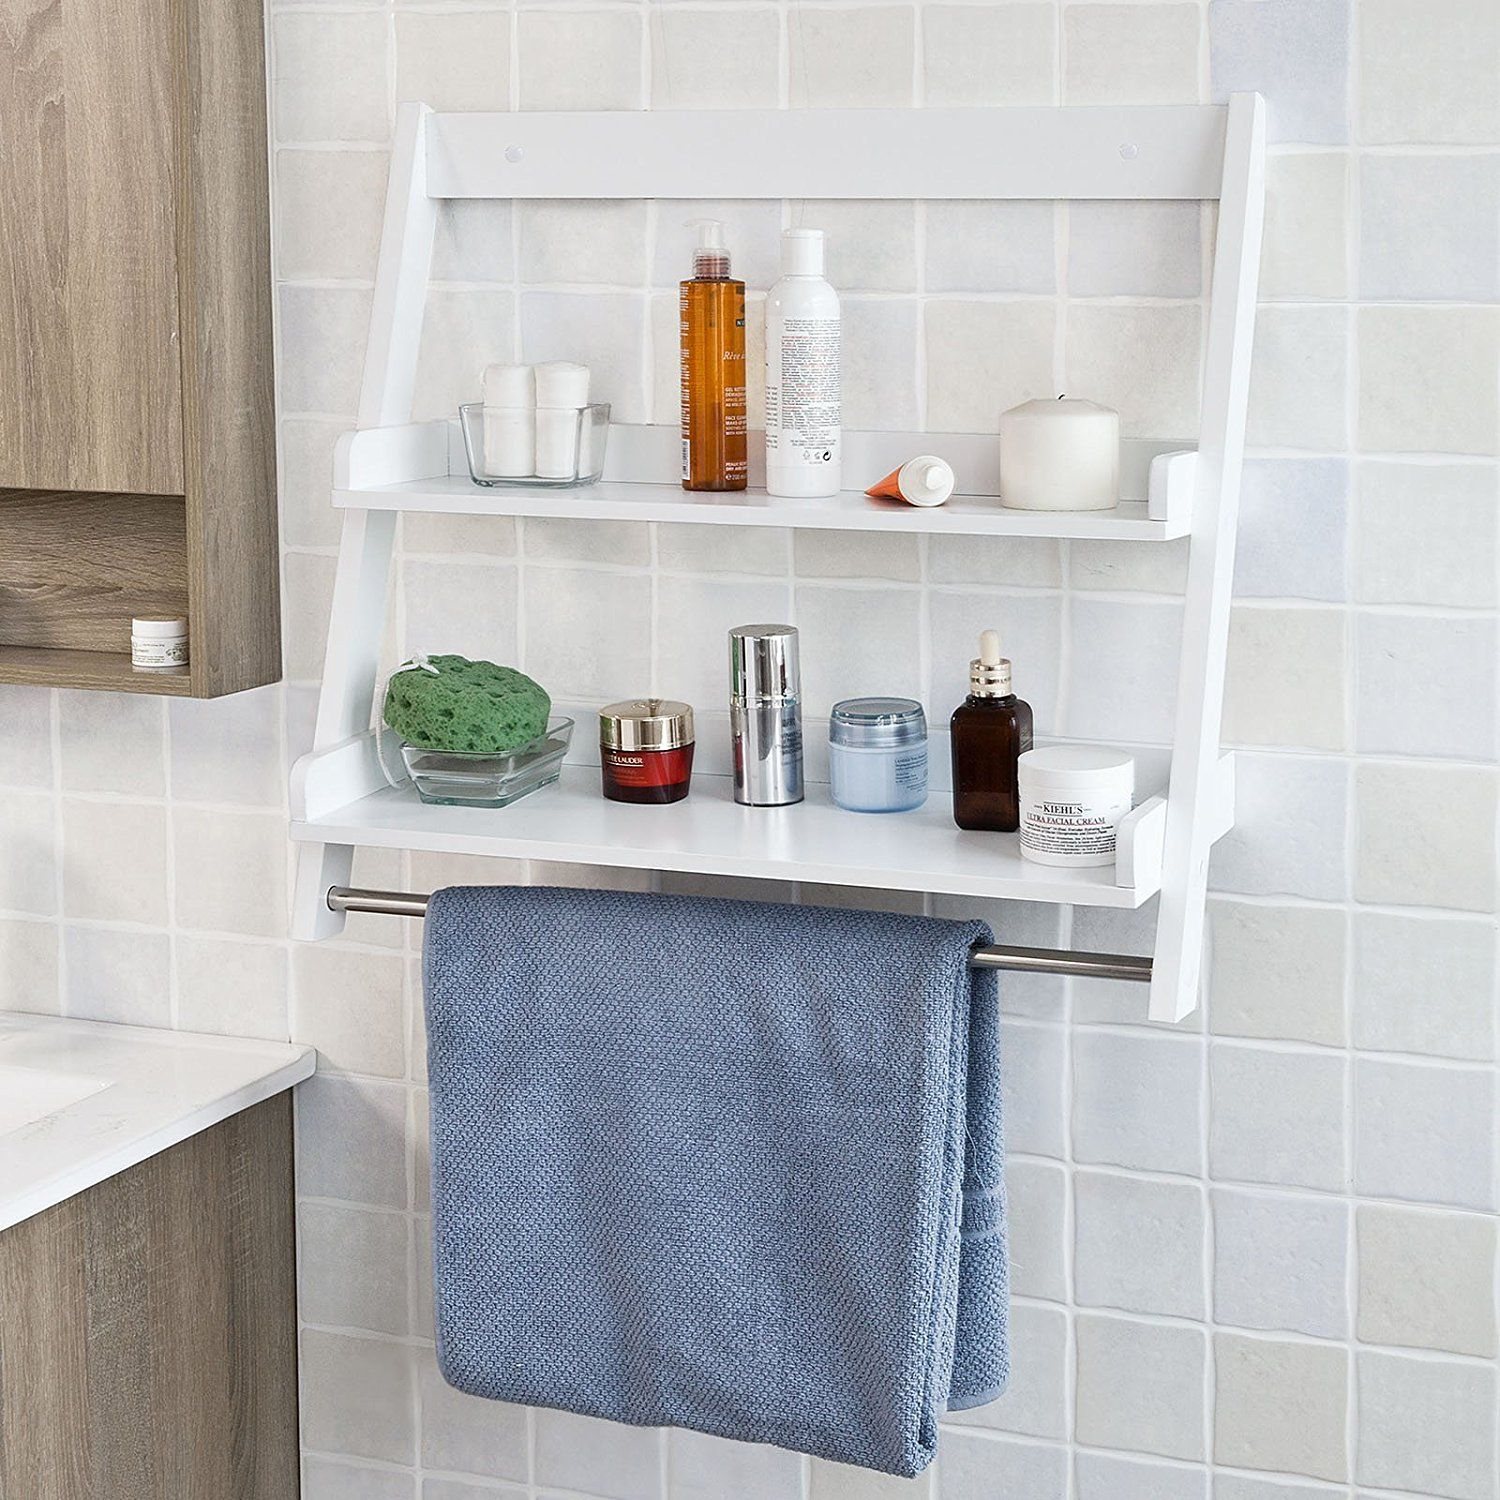 13 Clever Bathroom Organizers You Can Buy on Amazon Right Now ...